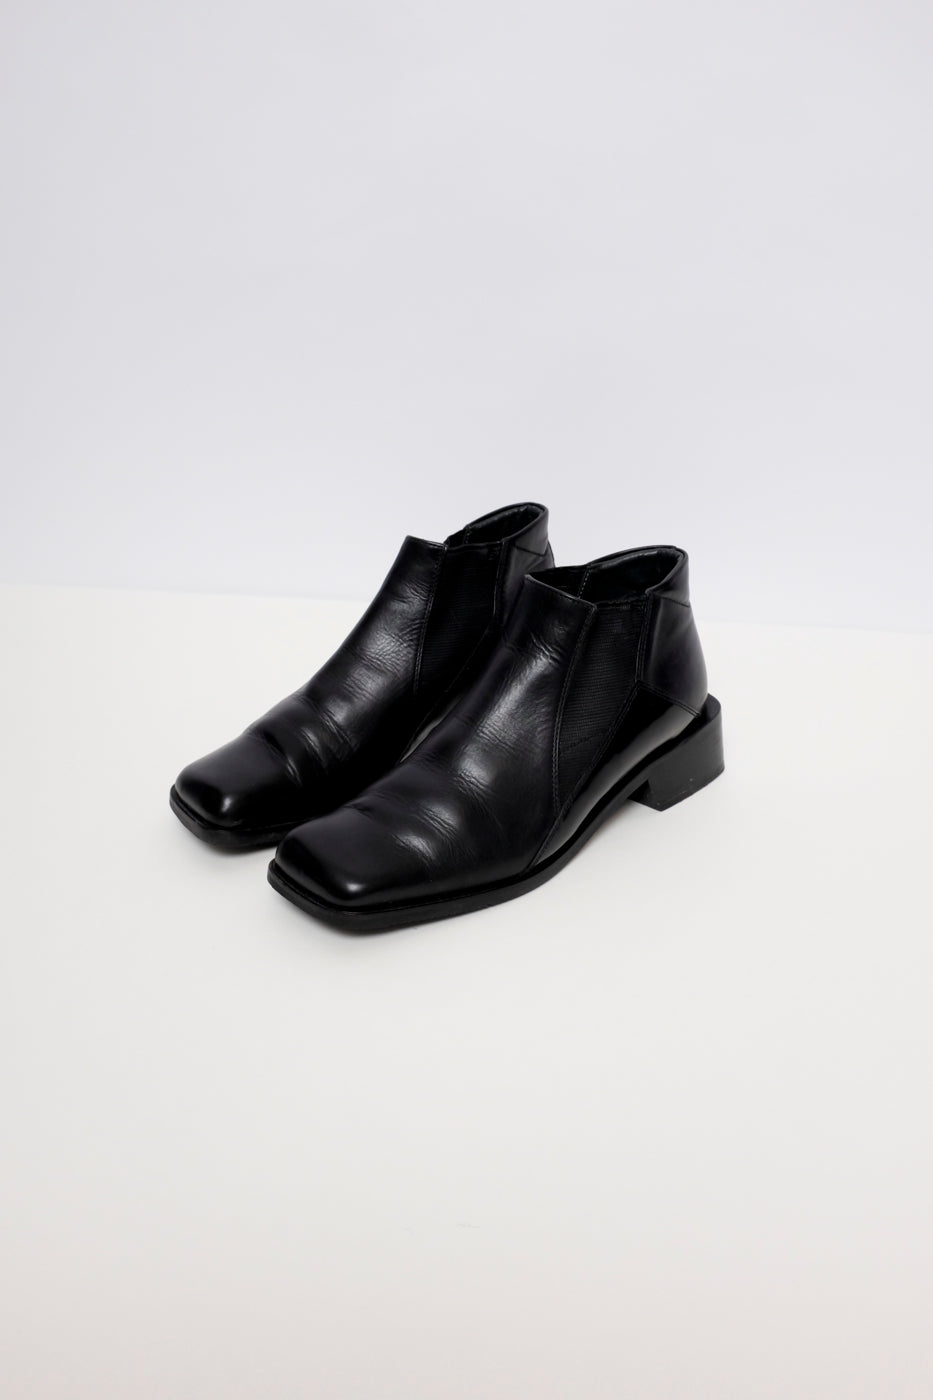 0010_SQUARE TOE BLACK 37 LEATHER CHELSEA BOOTS